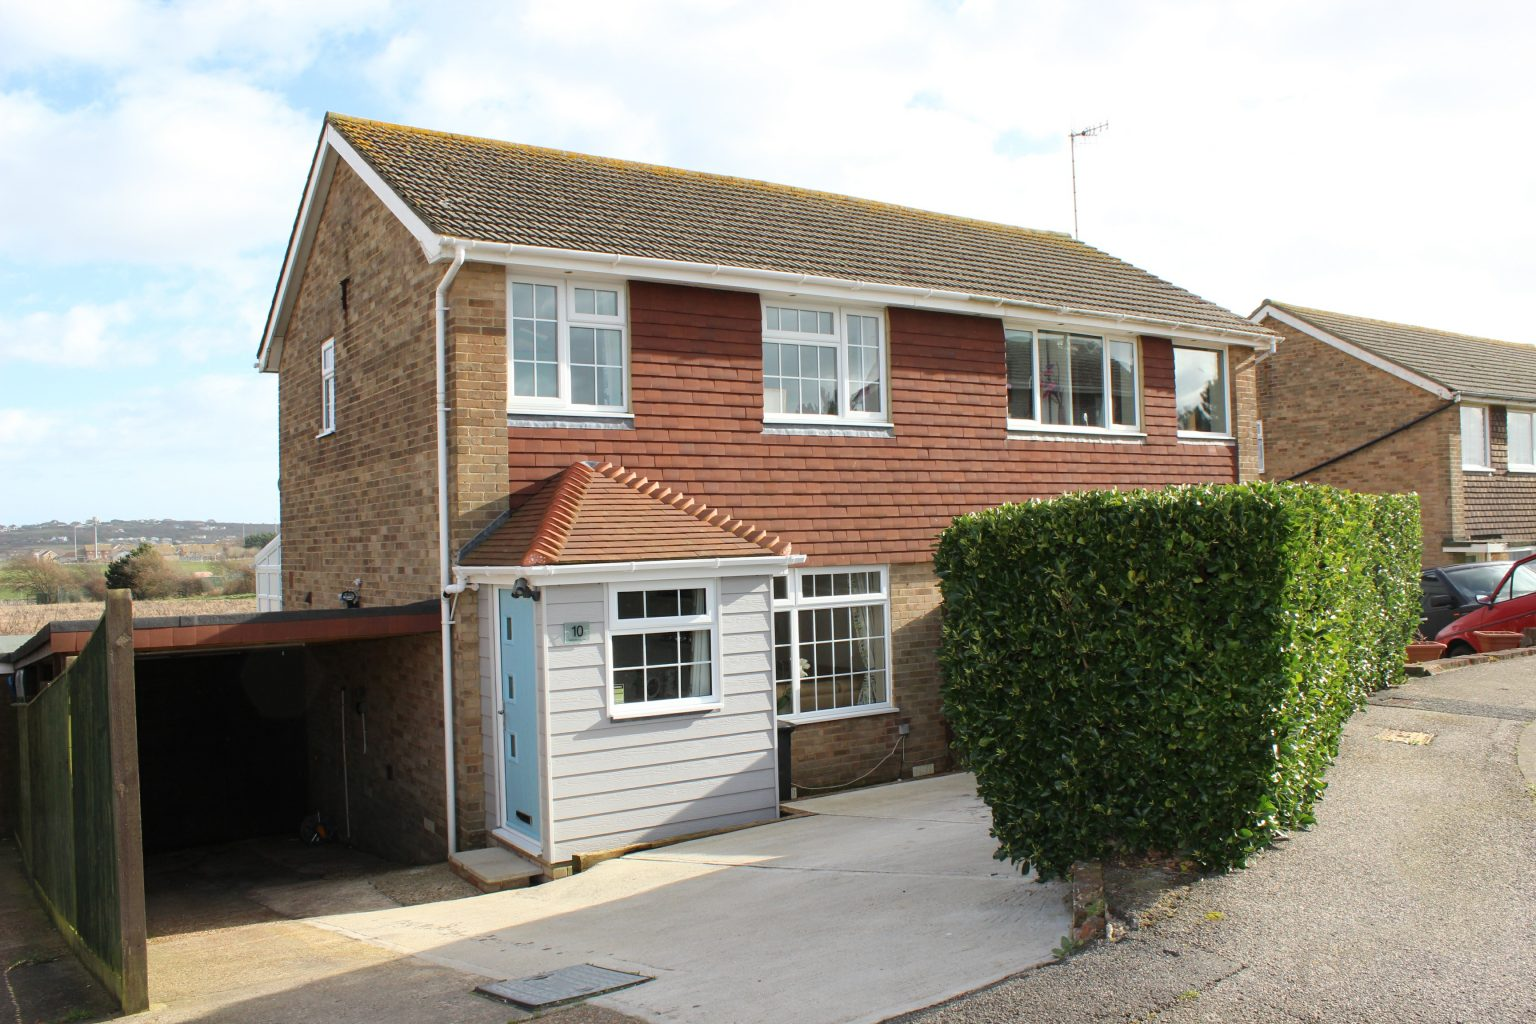 Image of the outside of a semi detached house in Peacehaven | Open House Estate Agents Peacehaven